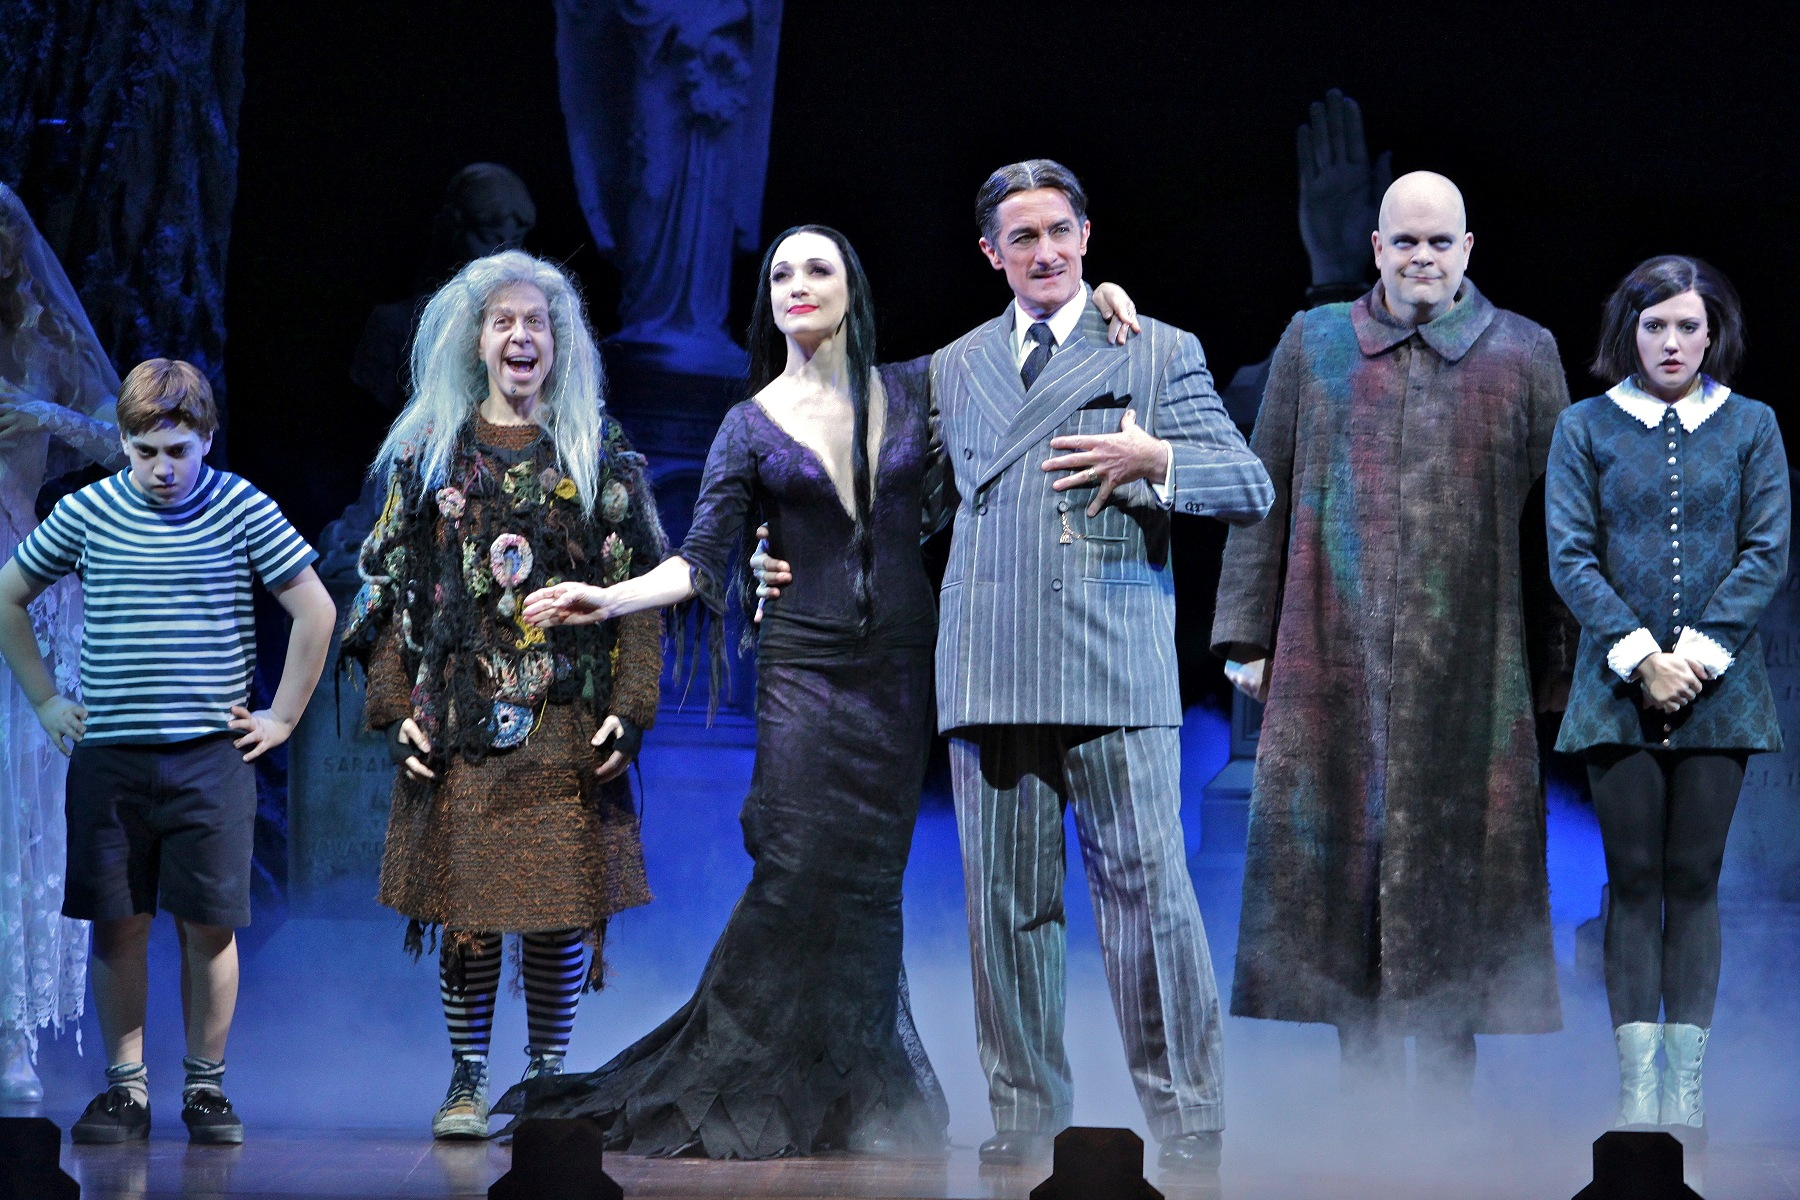 The Broadway cast of The Addams Family